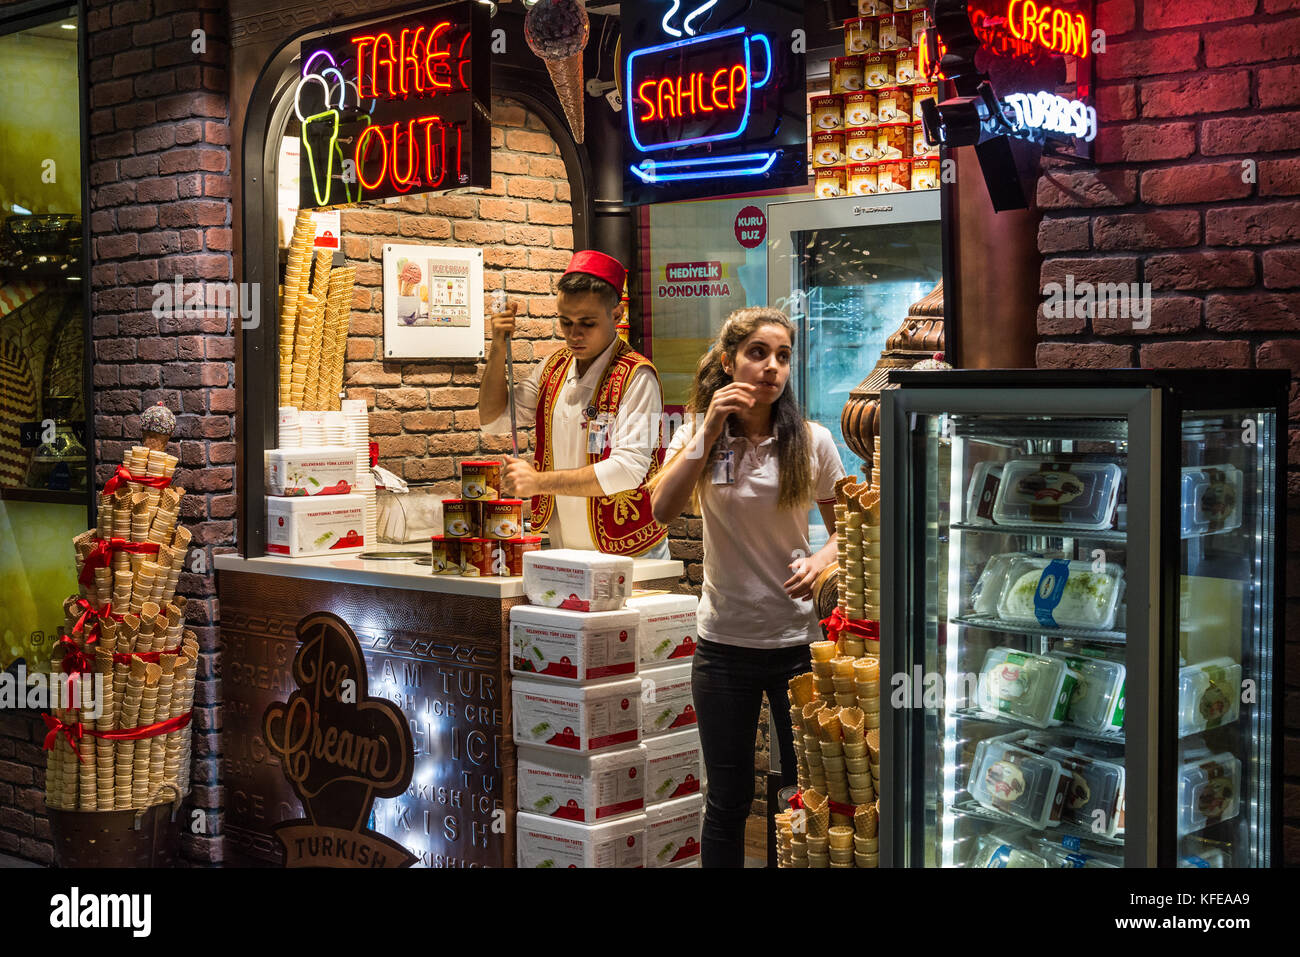 A young man and woman working in a traditional Turkish ice-cream shop. Istanbul, Turkey. - Stock Image